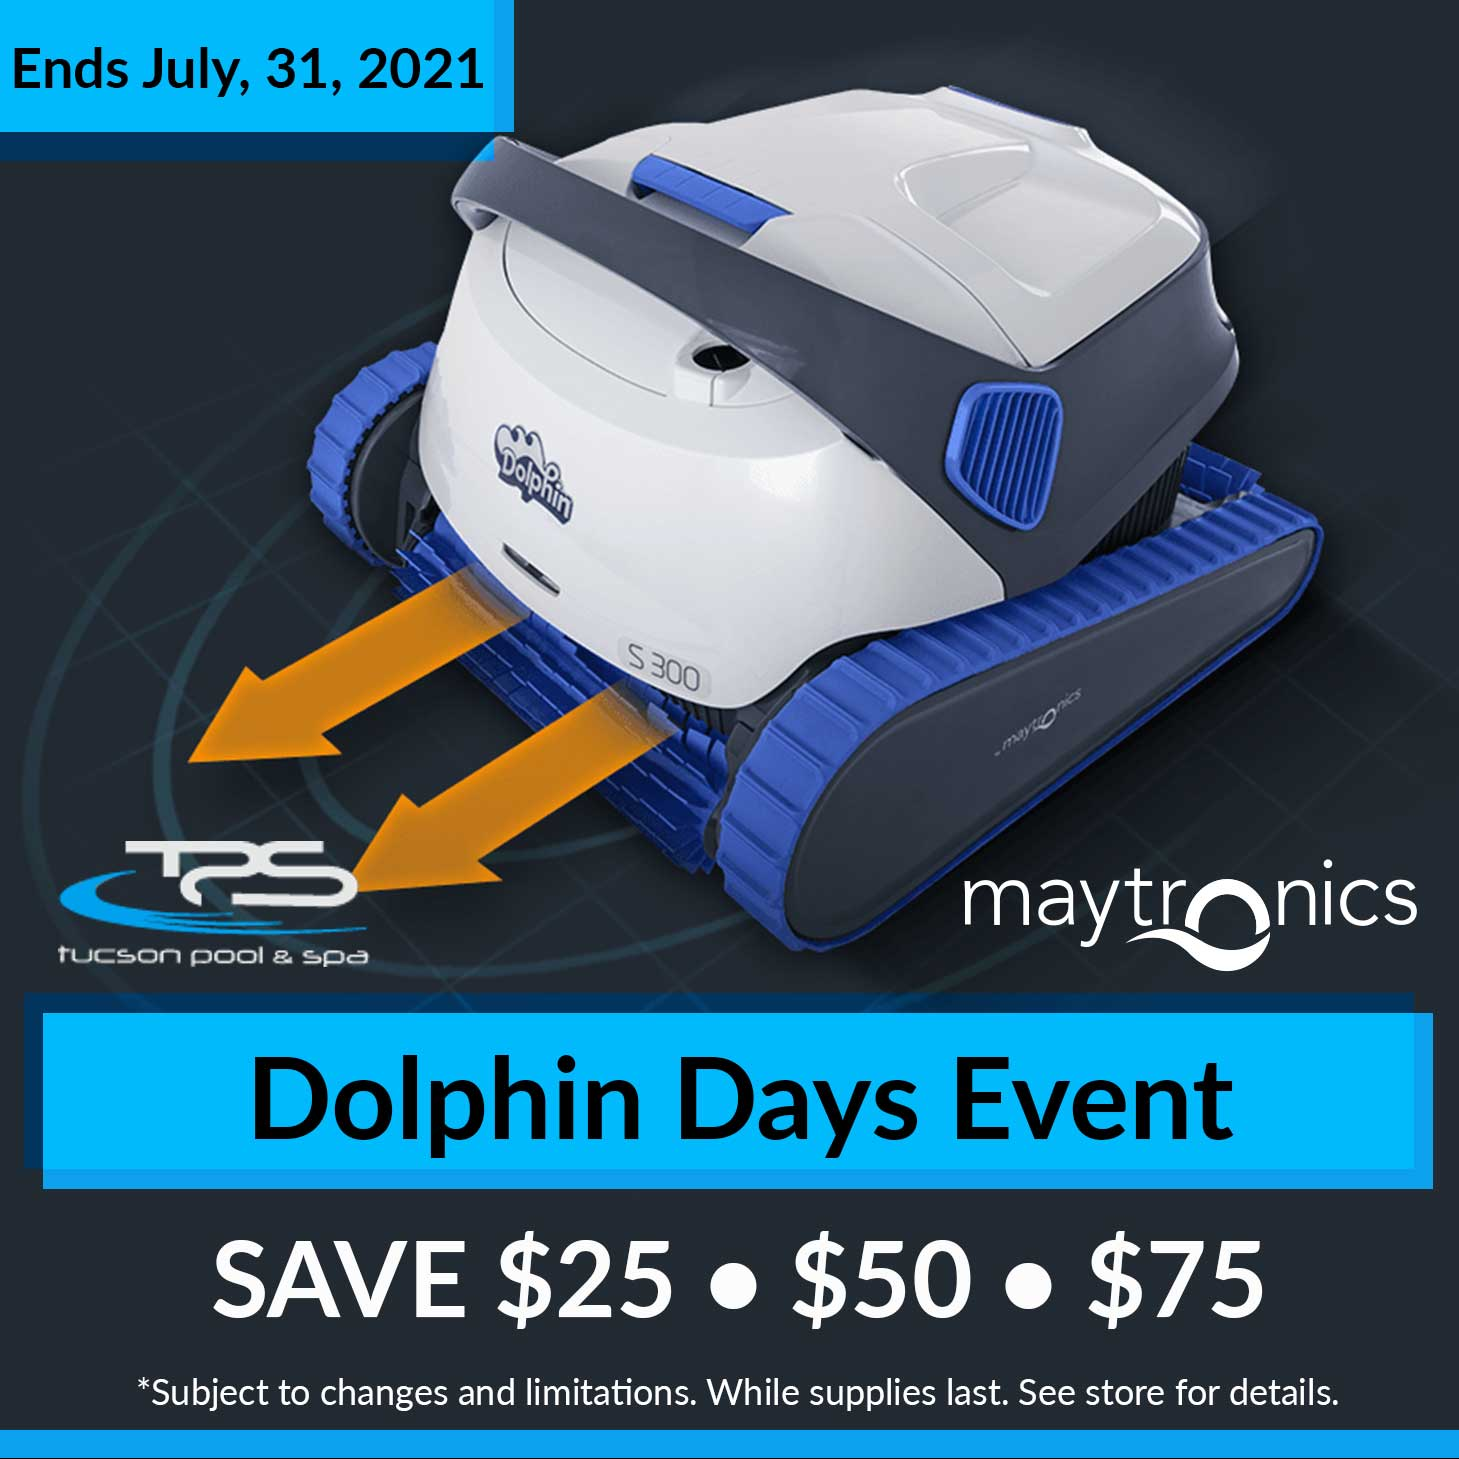 Dolphin Days Event